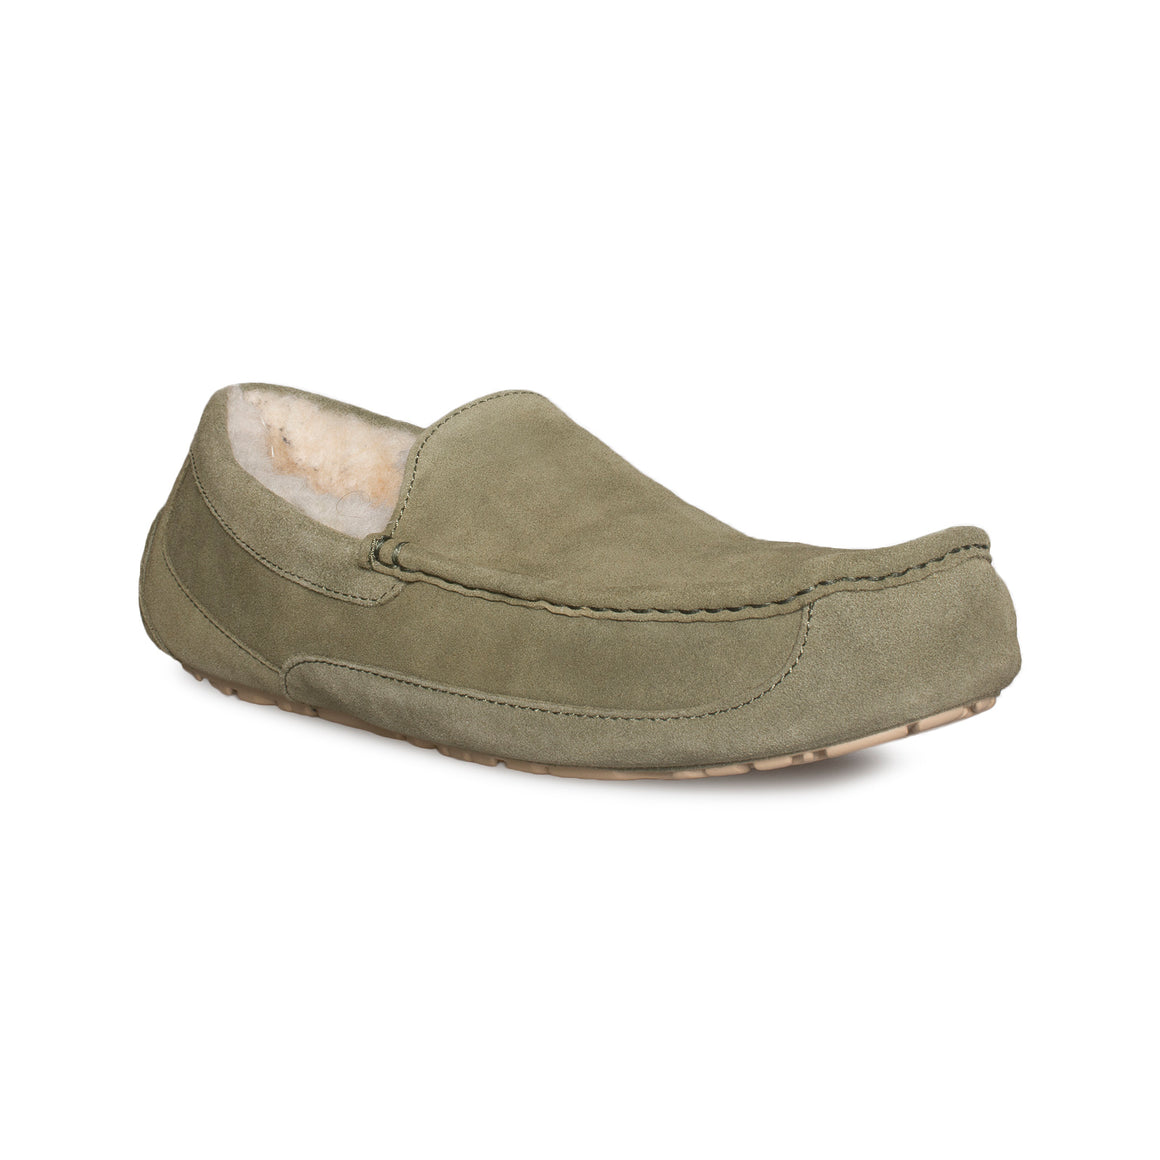 UGG Ascot Moss Green Slippers - Men's